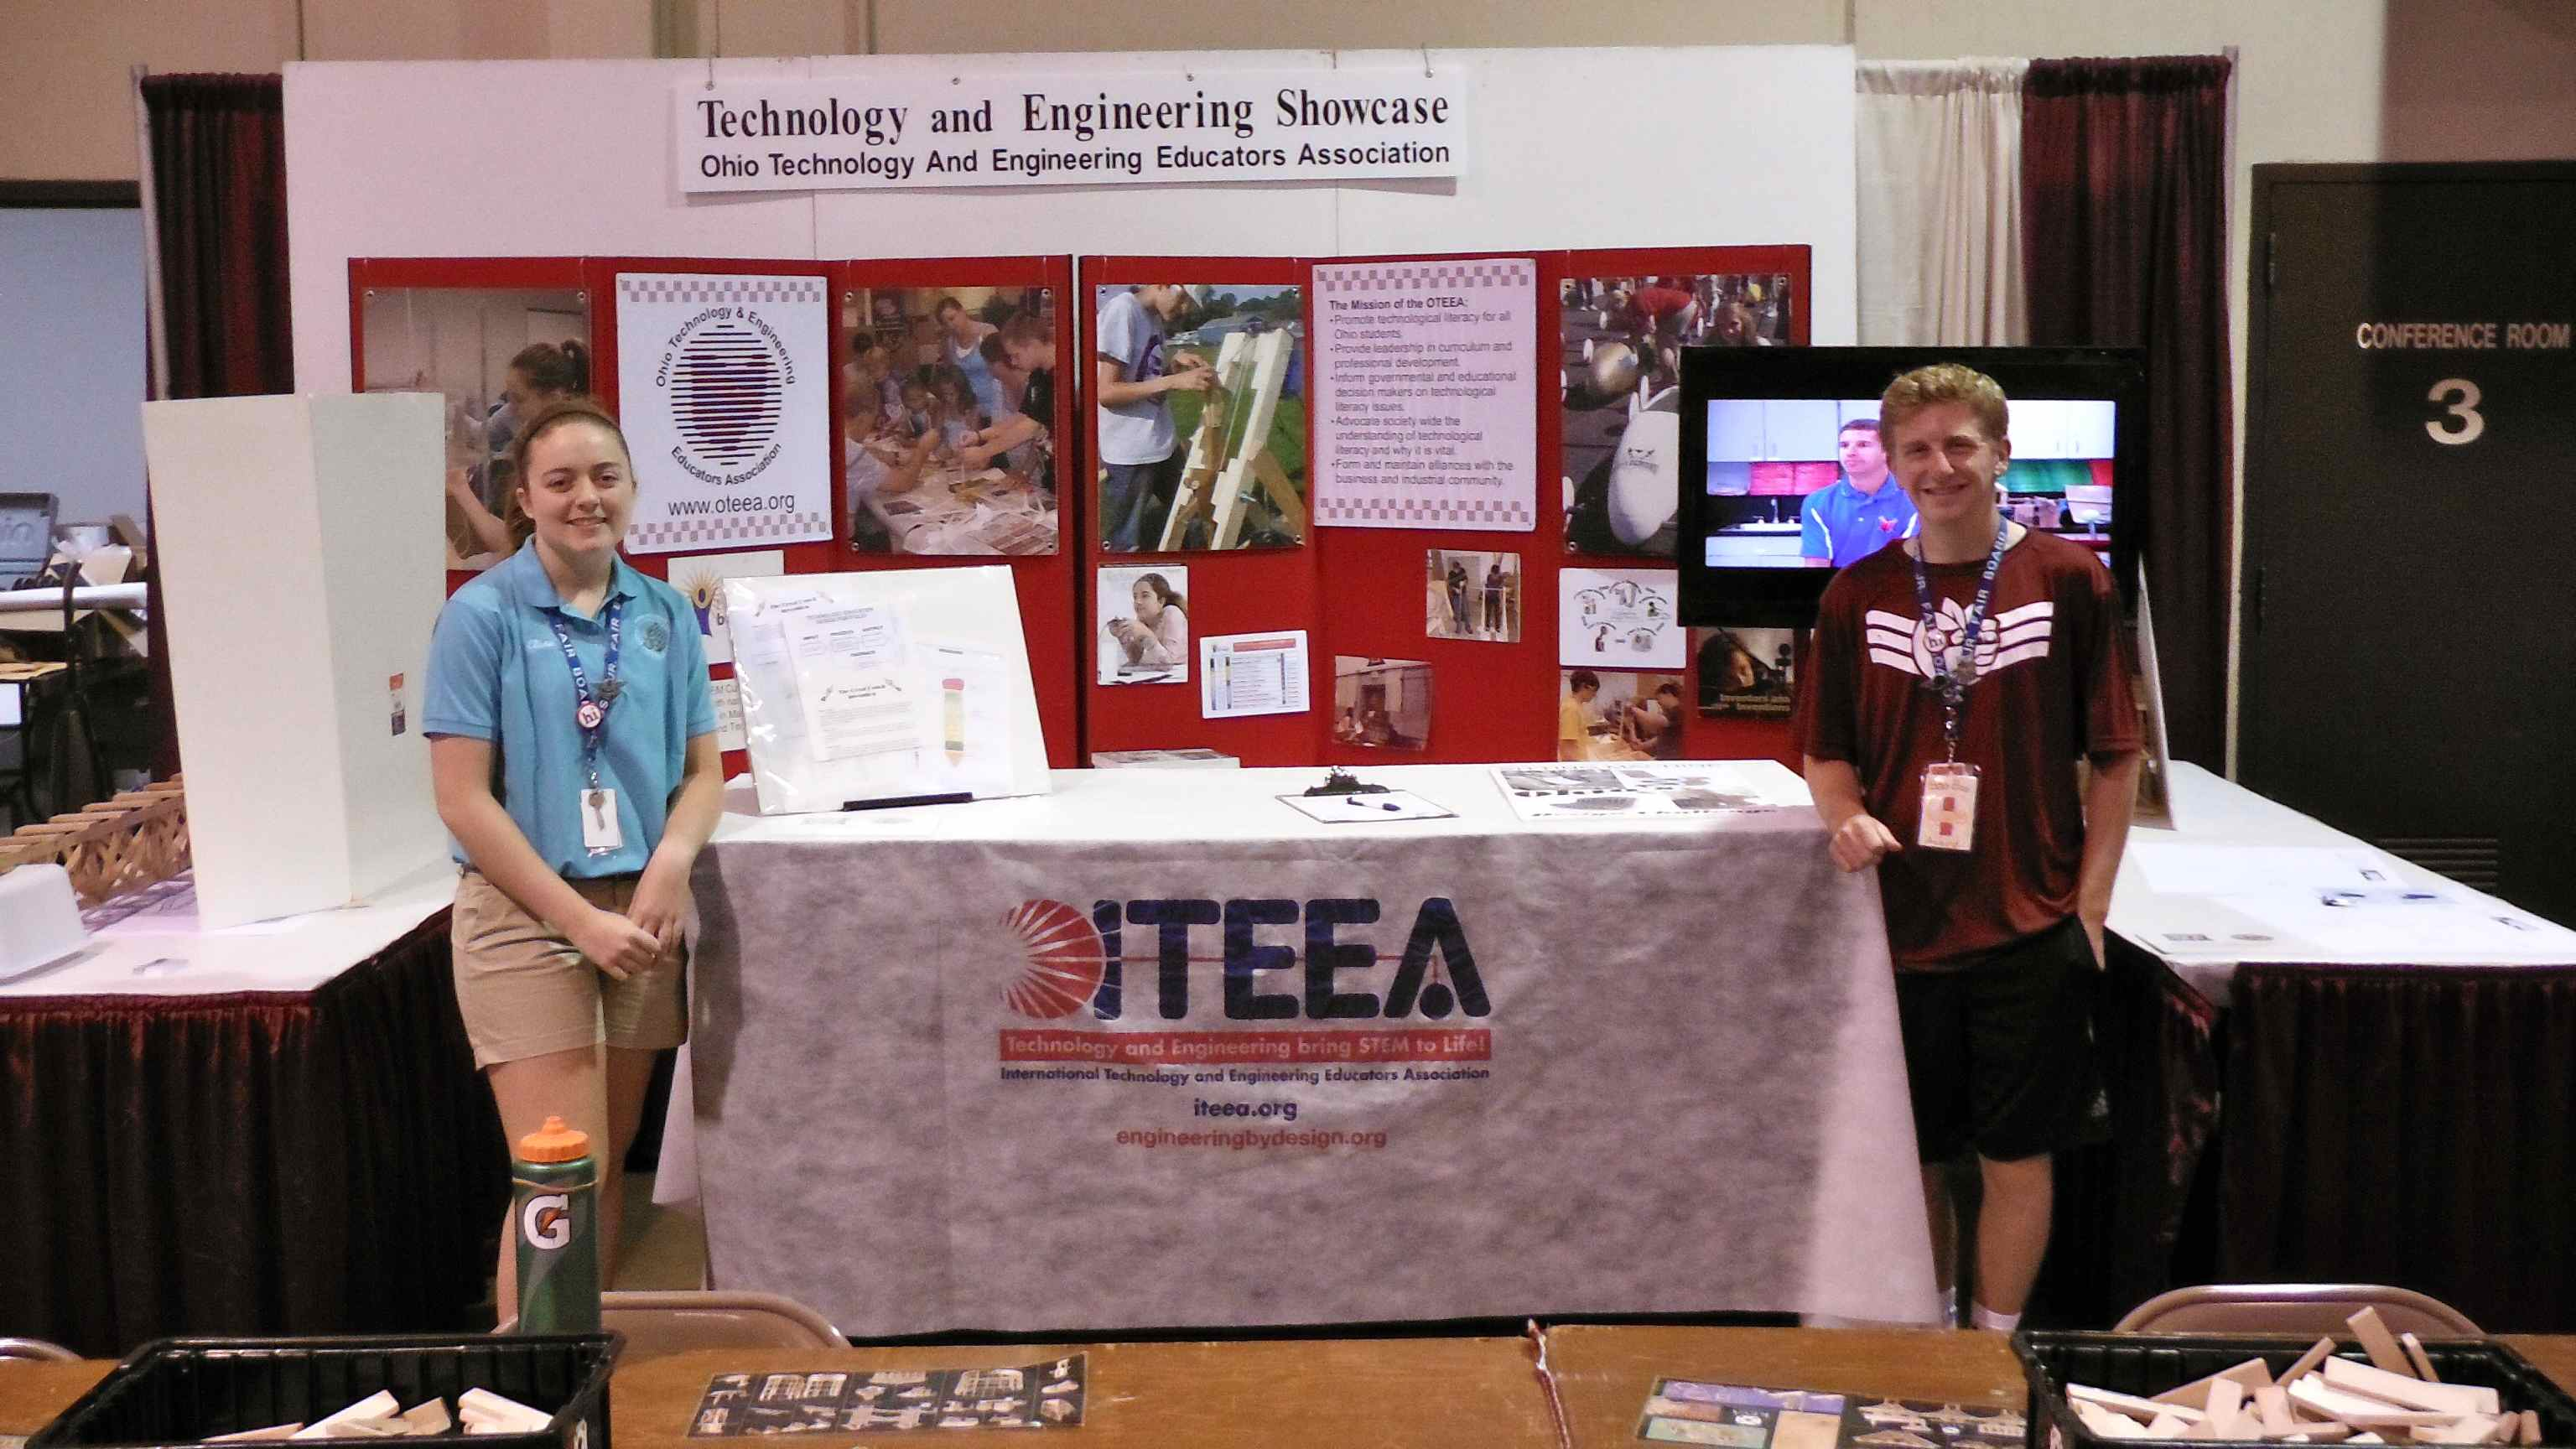 Junior Fair Board Ambassadors Elise Kennedy and Nicholas Button take a break at the ITEEA booth at the Ohio State Fair - Summer 2015.